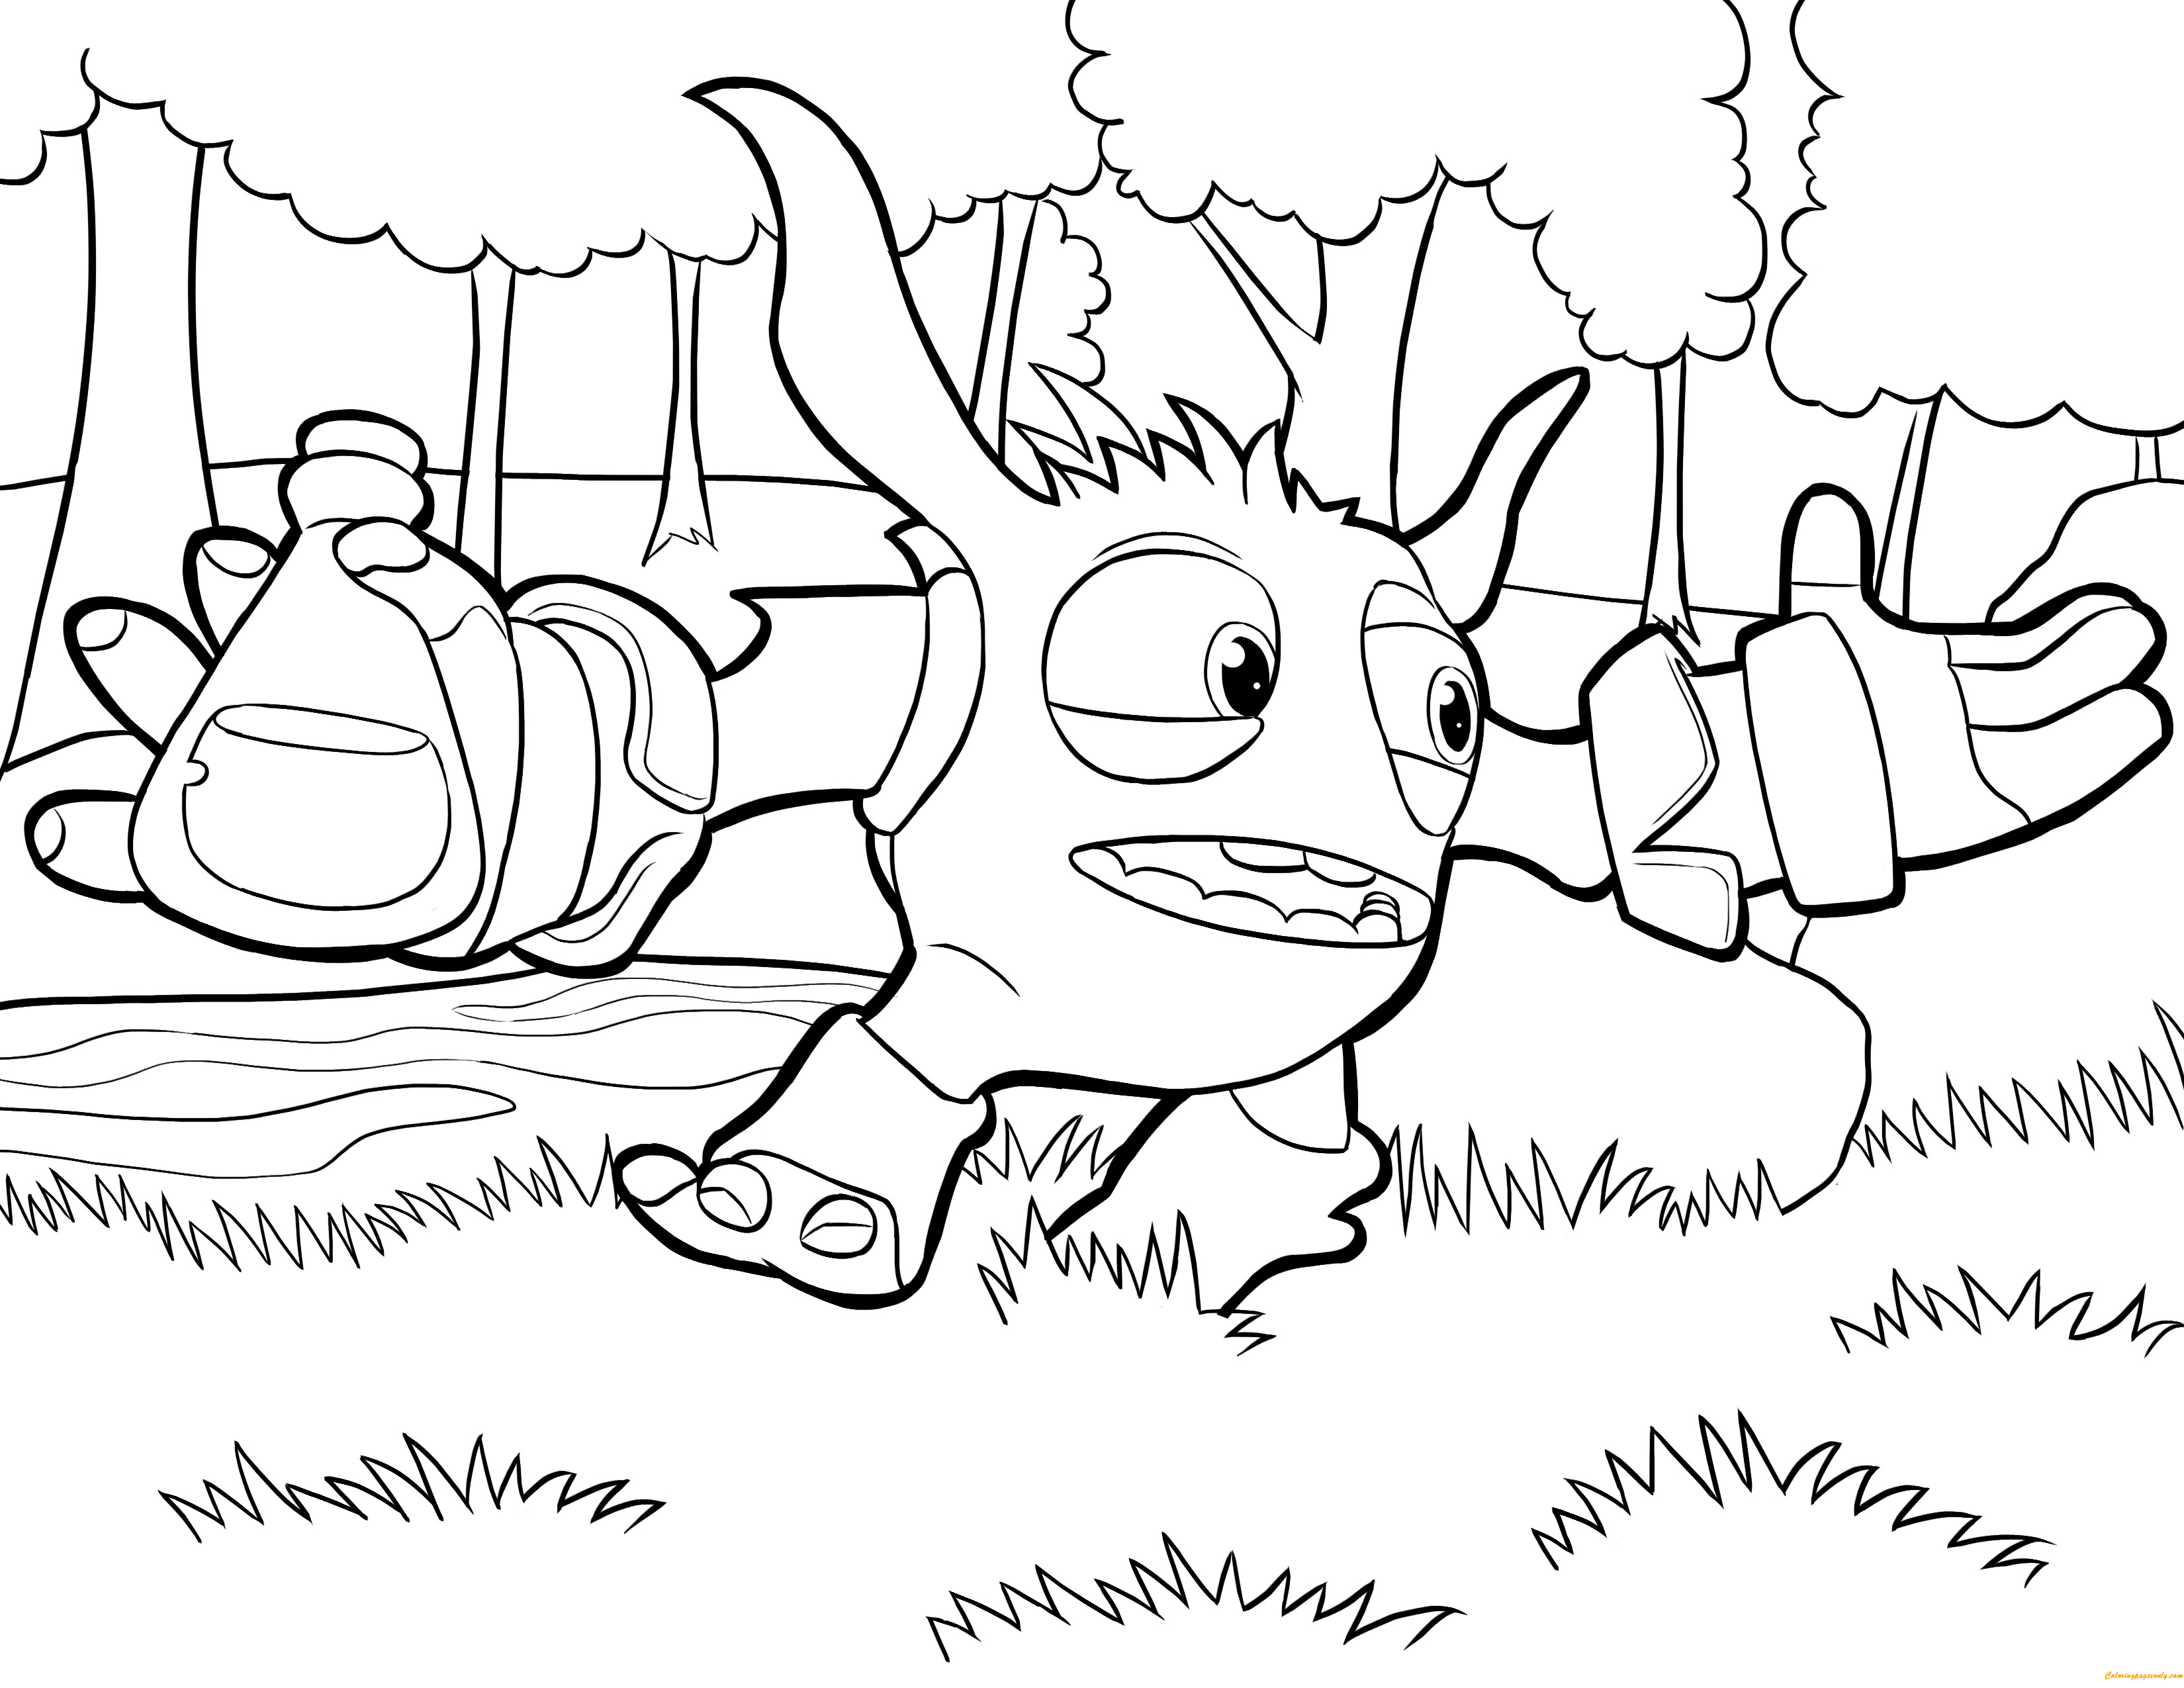 Pop Fizz Skylanders Coloring Page Free Coloring Pages Online